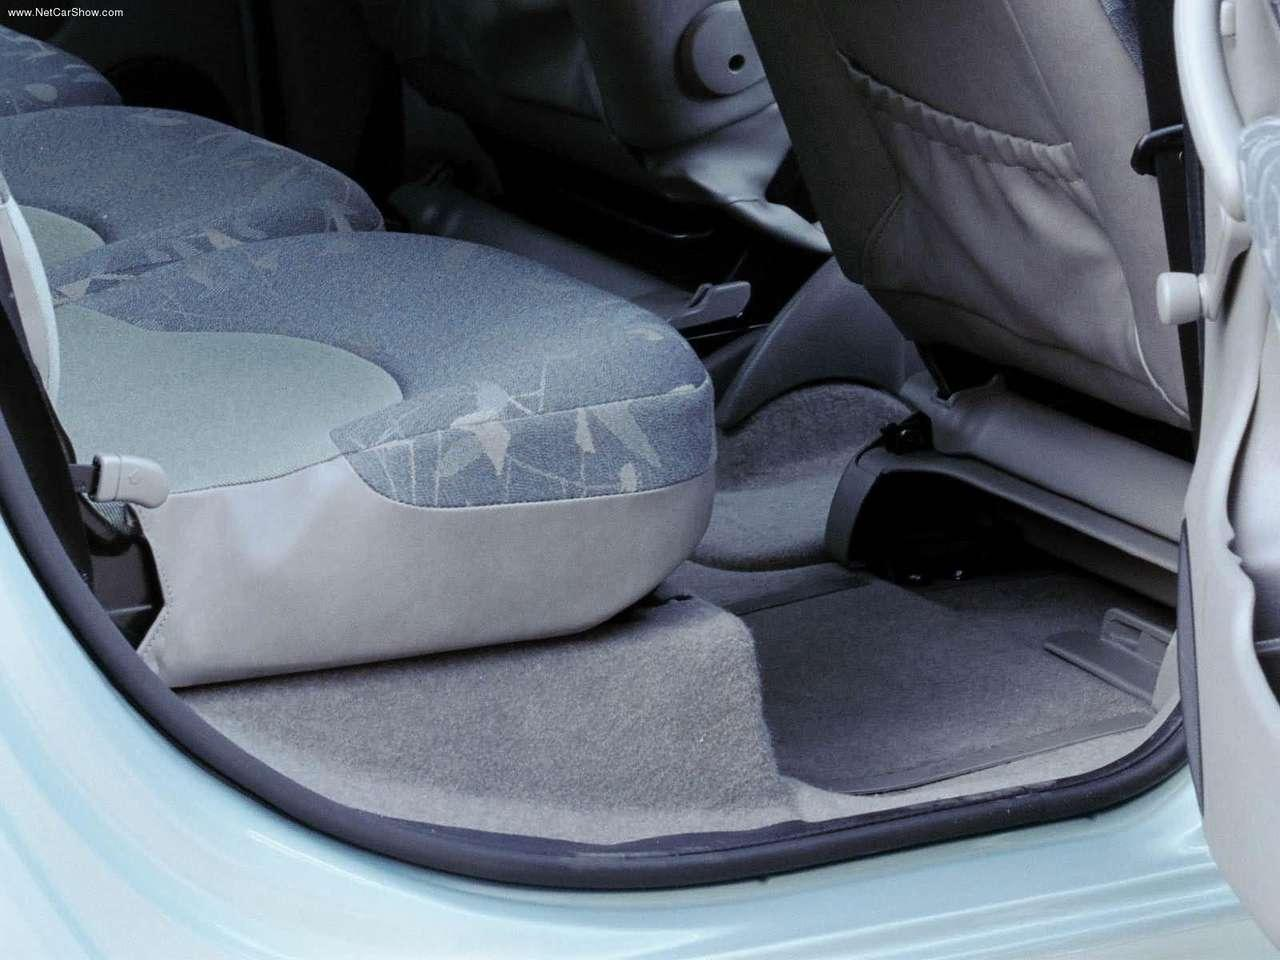 Xsara Picasso 1999 backseat